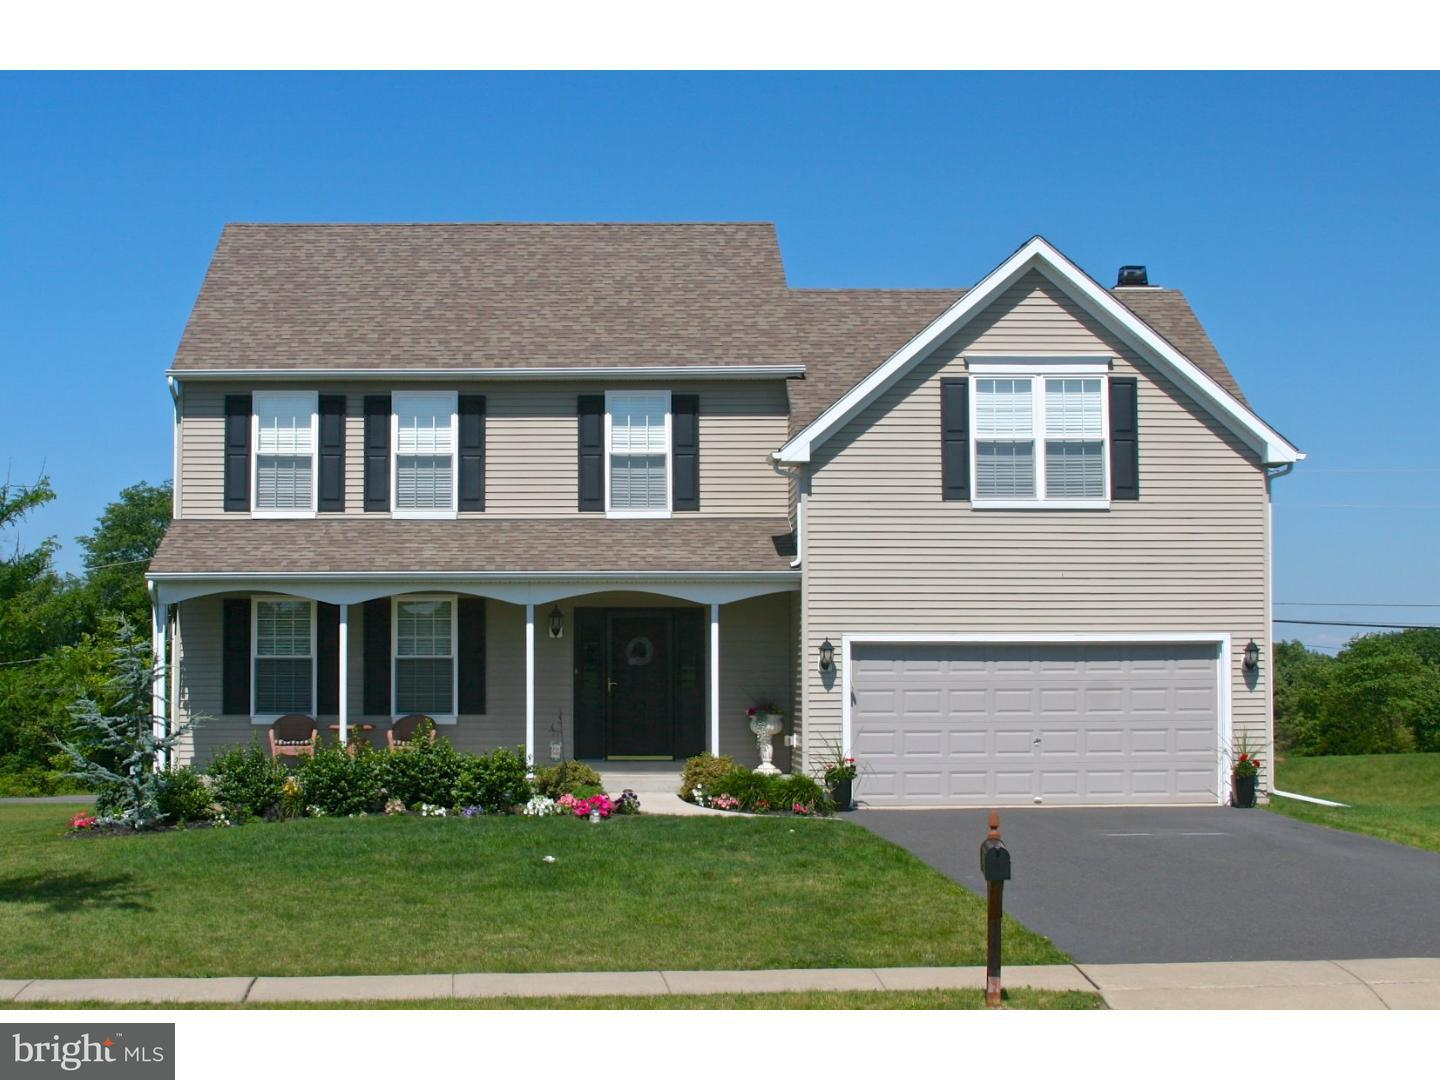 31 WSL W 5TH AVE, COLLEGEVILLE - Listed at $369,990, COLLEGEVILLE